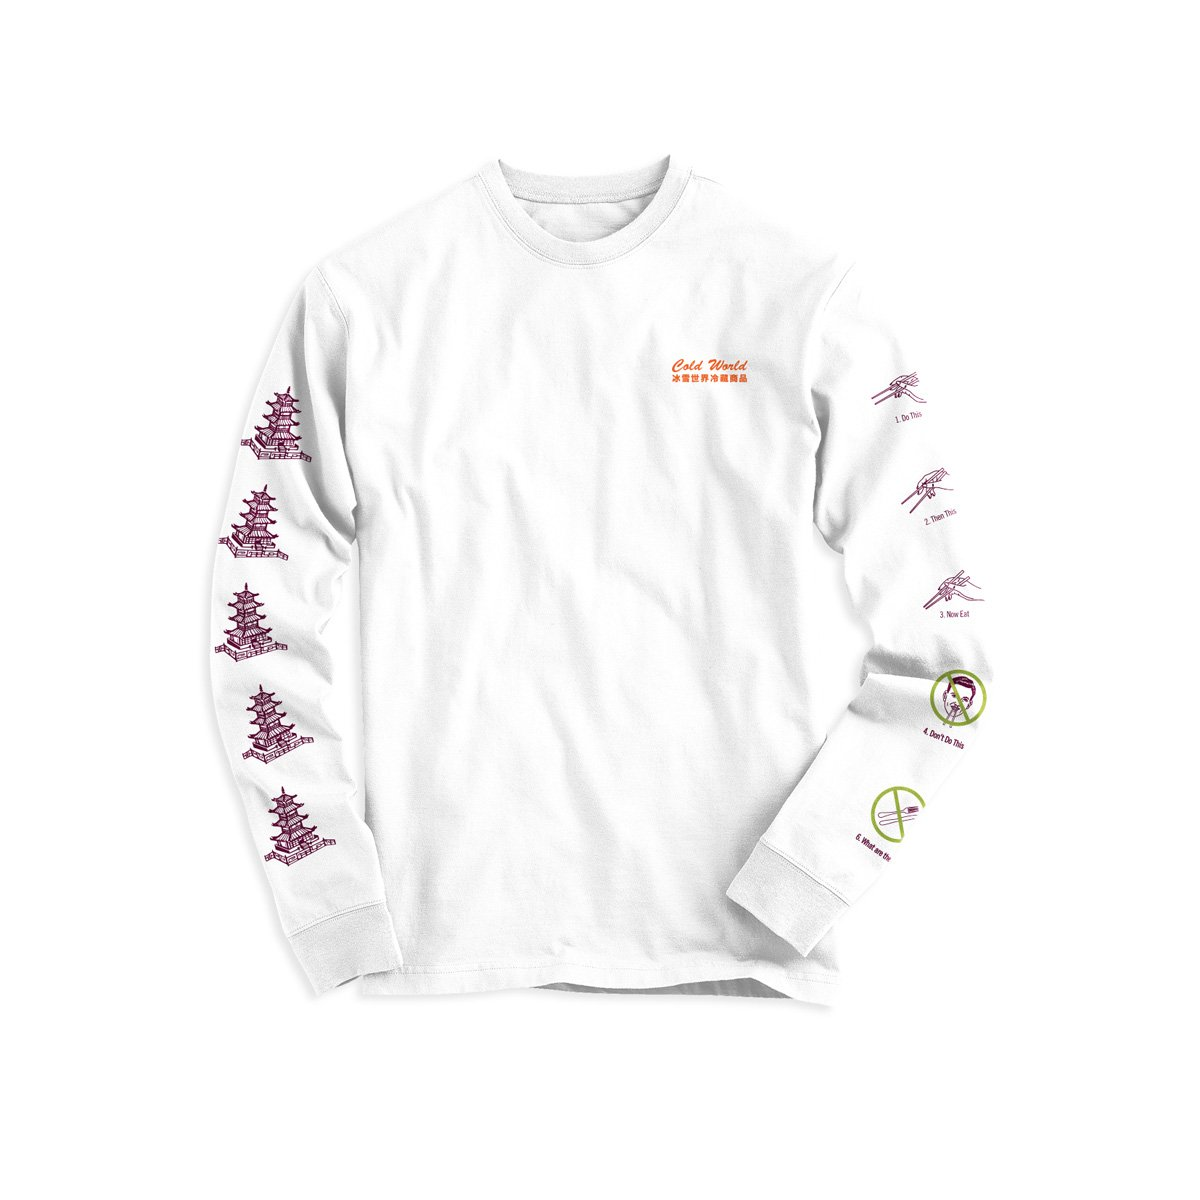 【COLD WORLD FROZEN GOODS/コールドワールドフローズングッズ】TAKE OUT LONG SLEEVES ロングTシャツ / WHITE